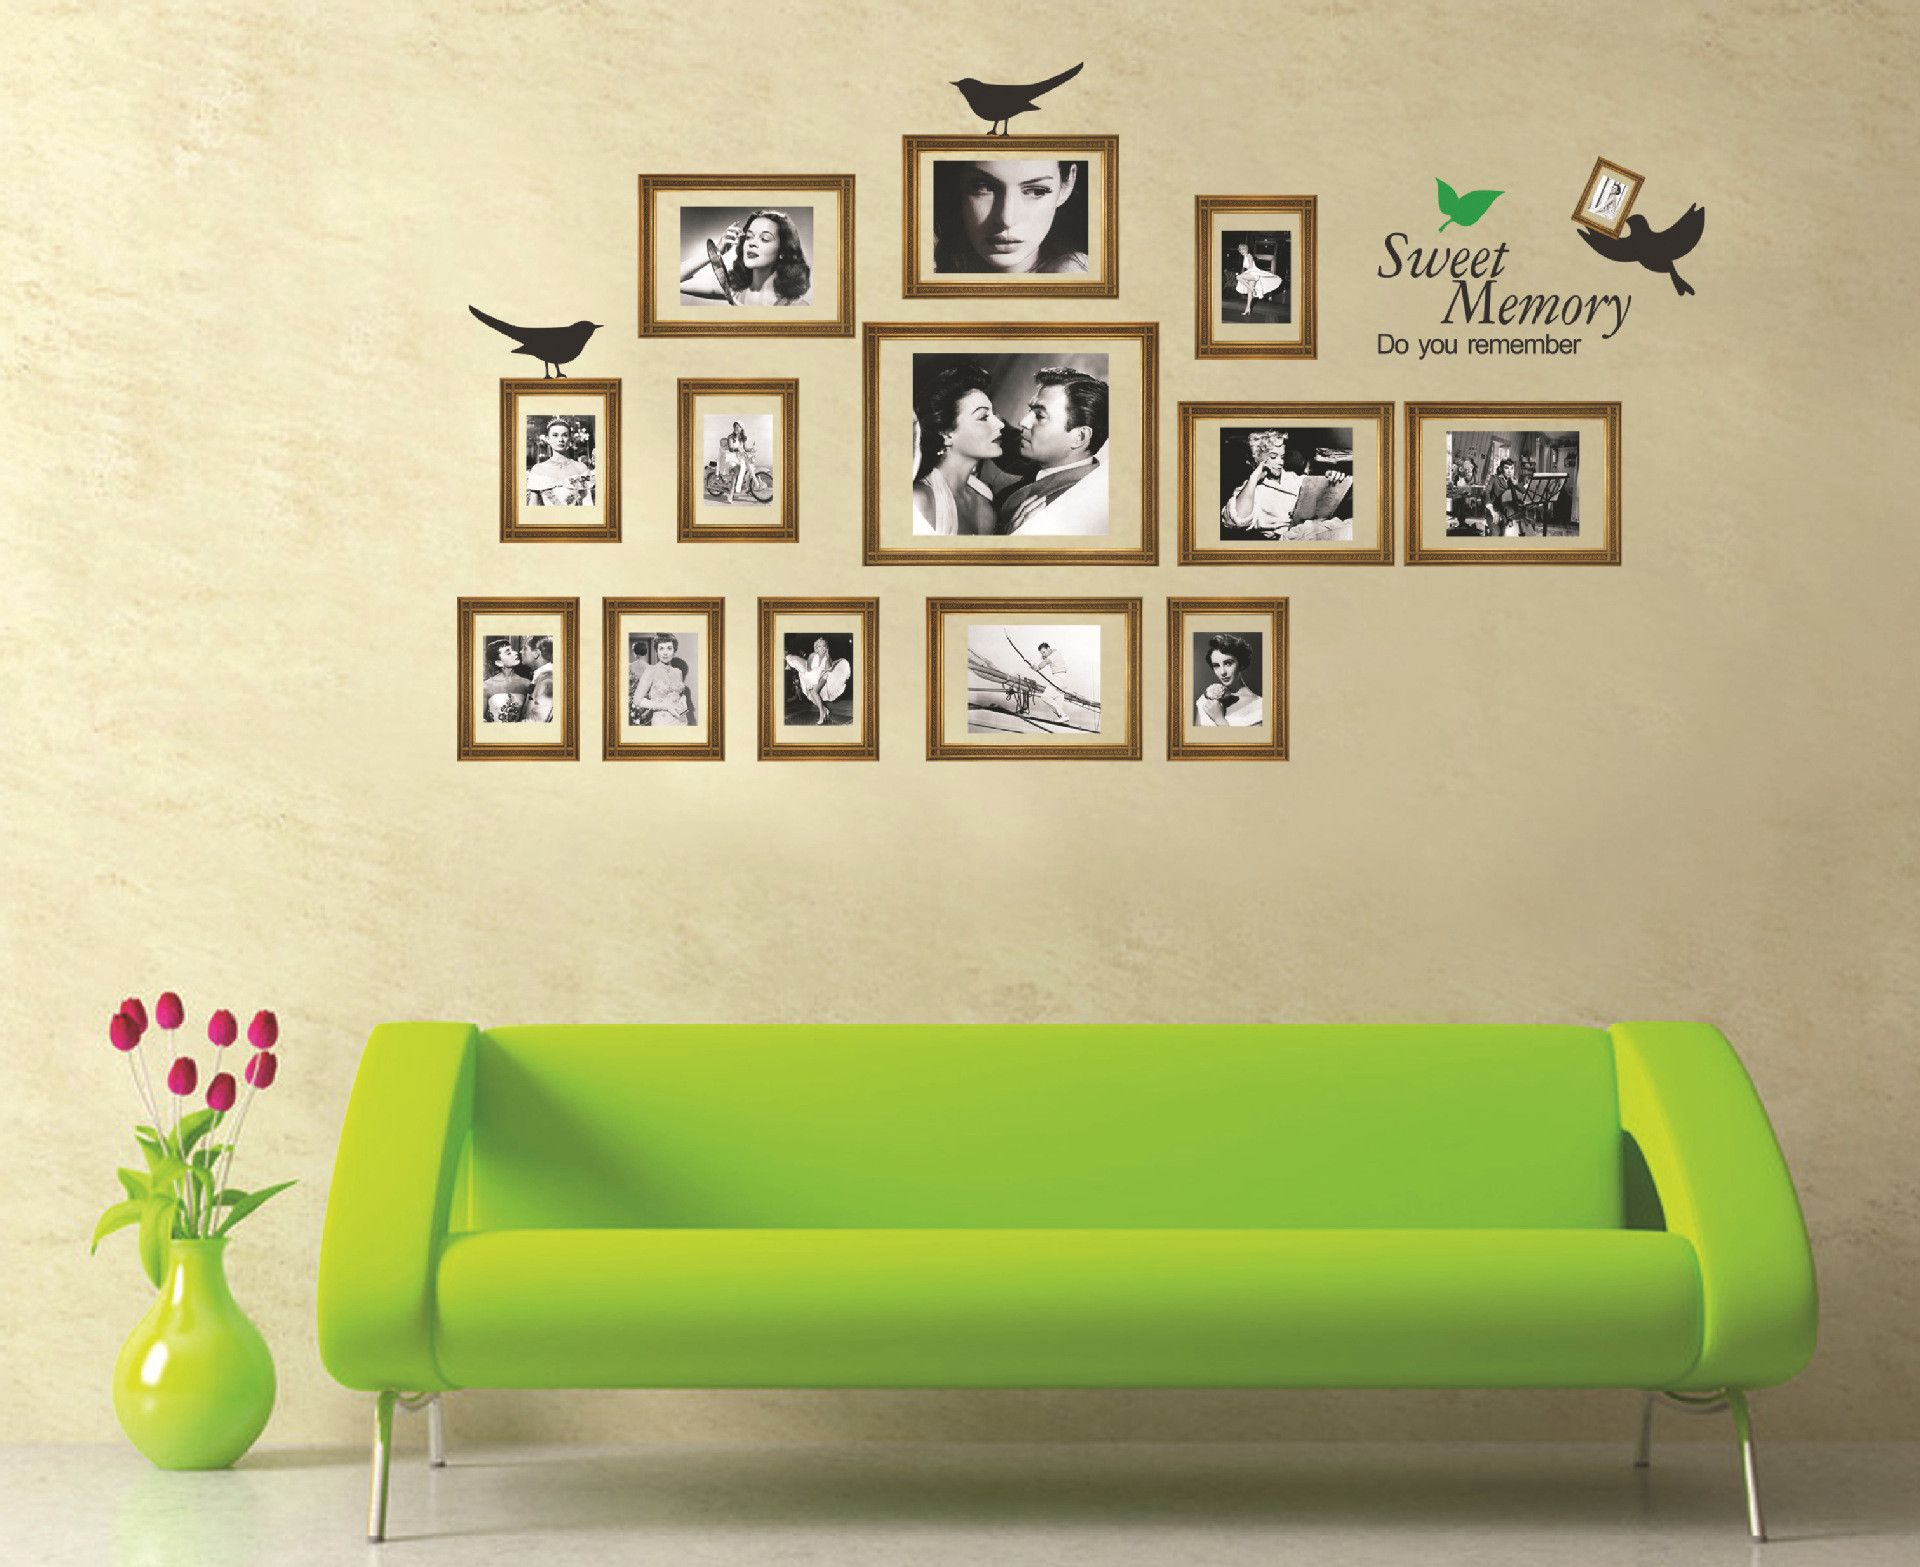 Photo Frame Wall Stickers Vinyl Decal Removable Art Diy Windows